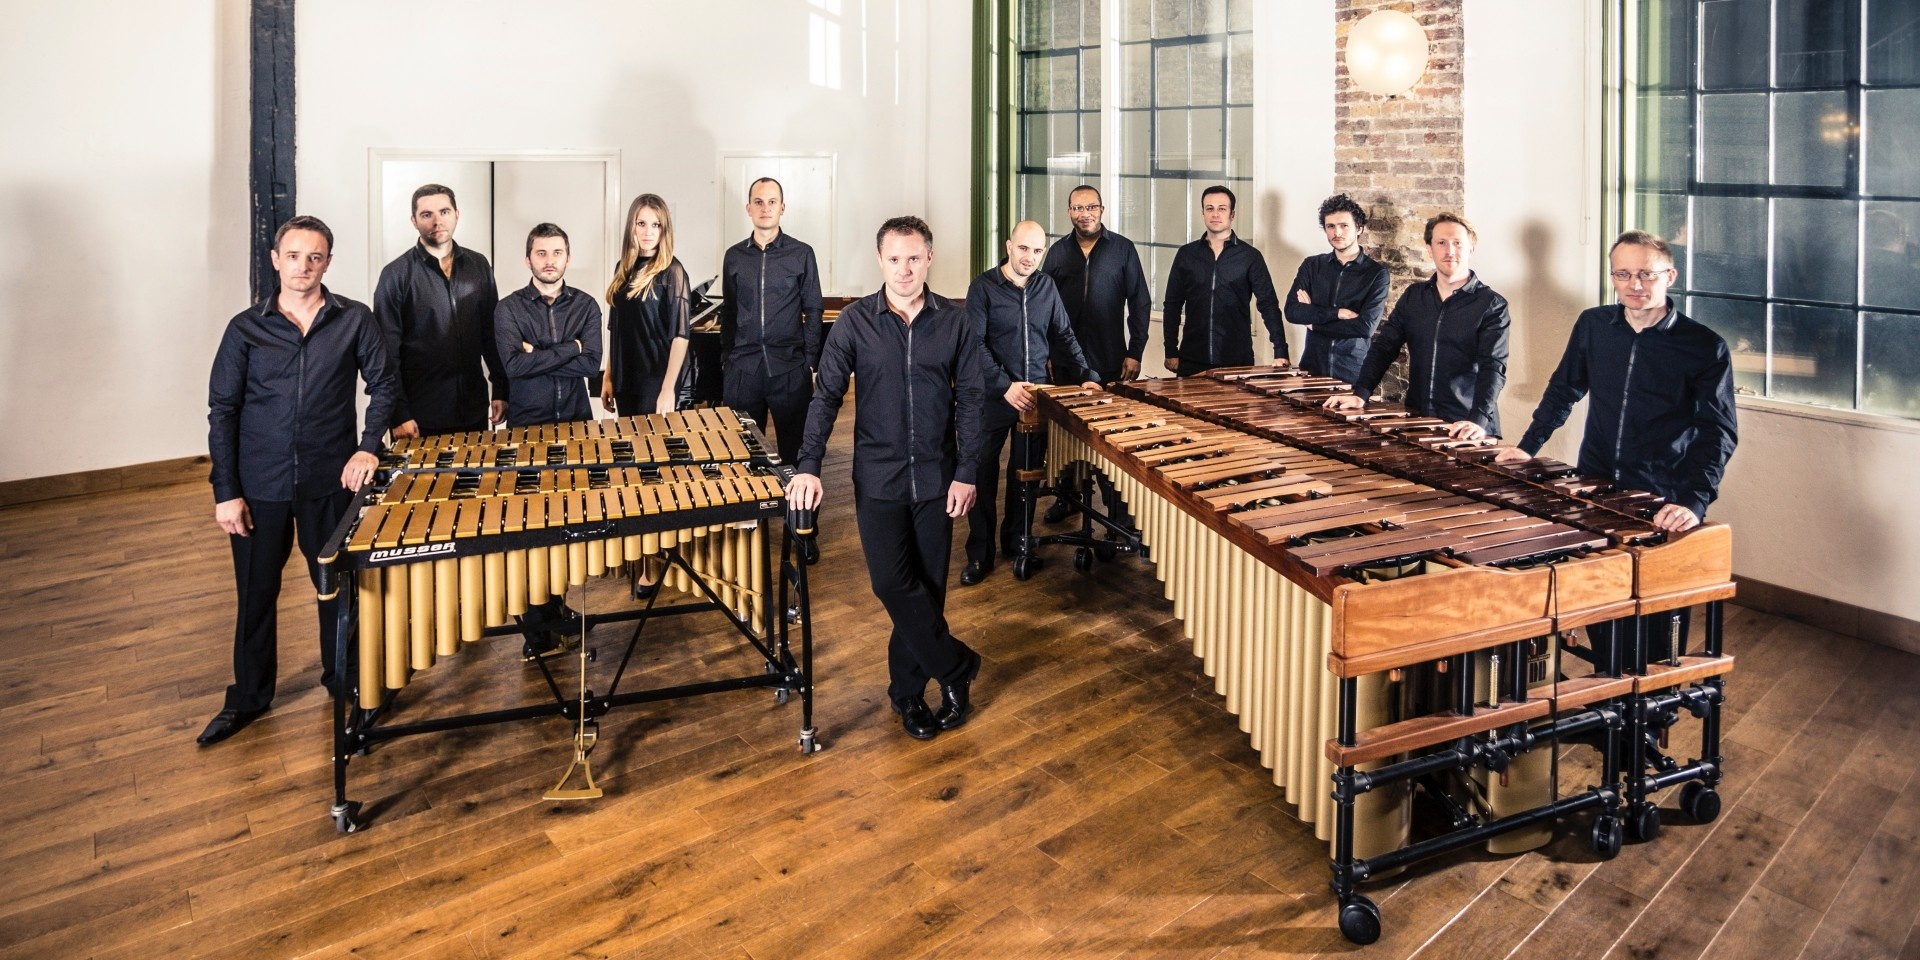 The Colin Currie Group to perform Steve Reich's selected works, including Drumming, at the Esplanade Concert Hall